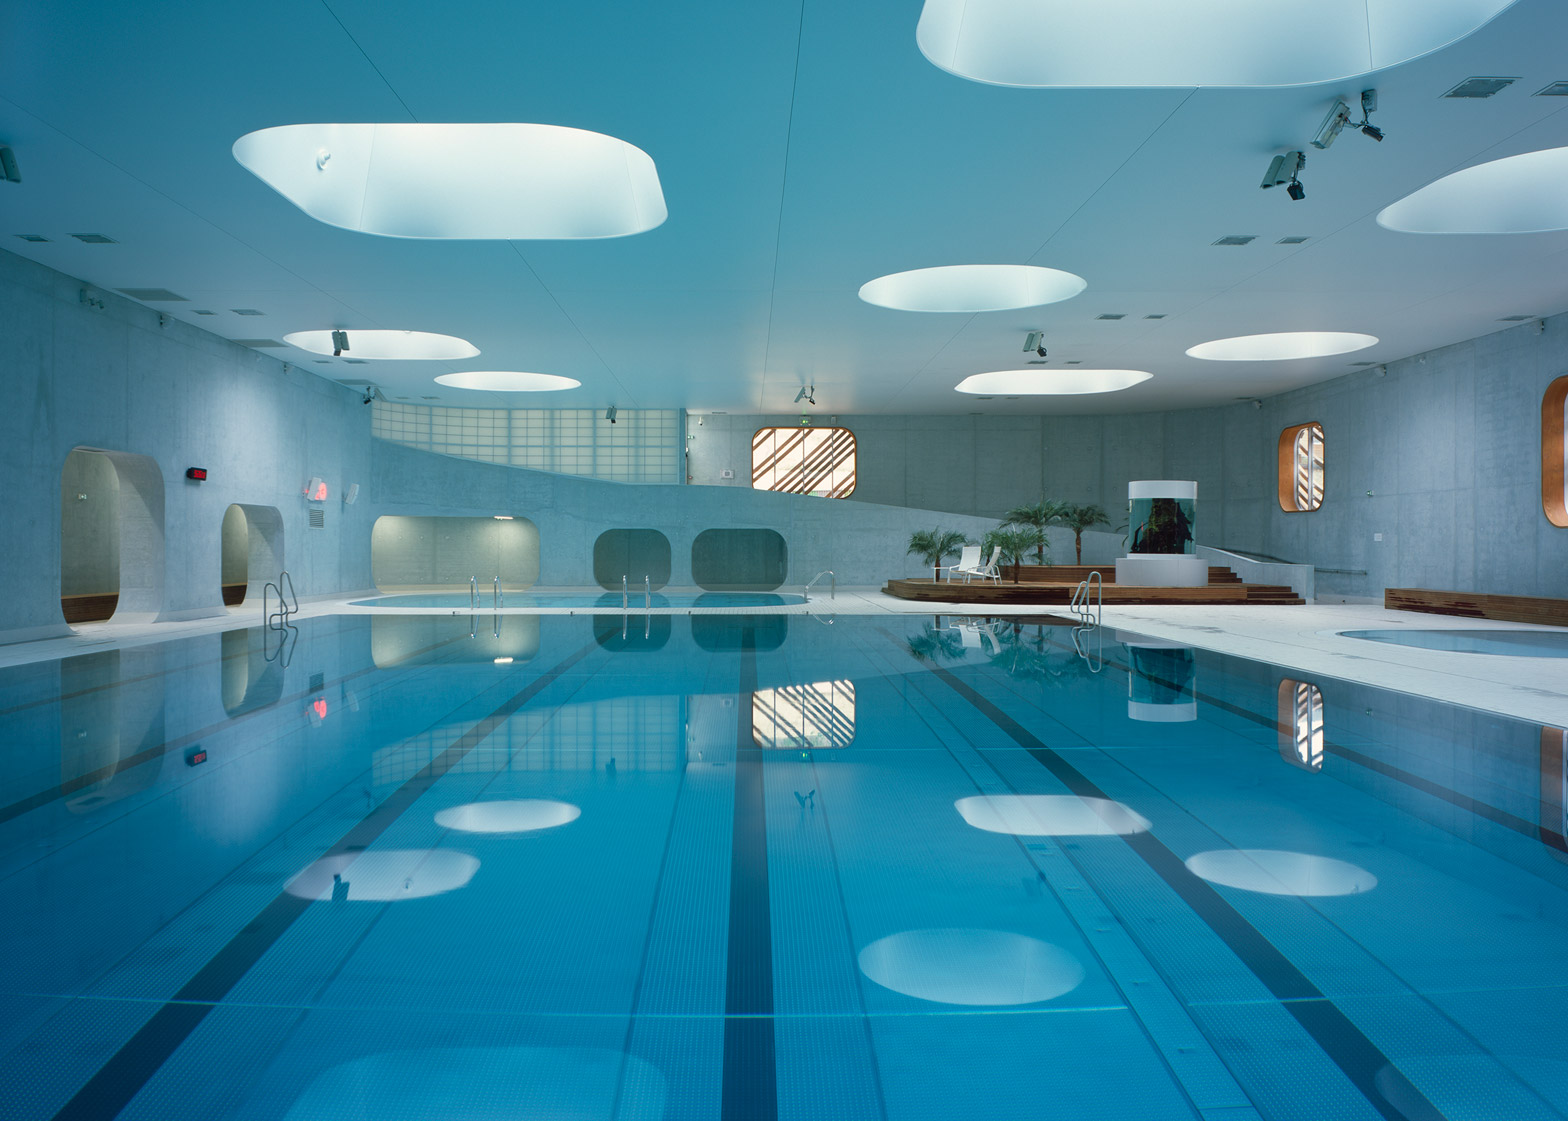 Design By: Piscine Issy-les-Moulineaux: Paris Swimming Pool